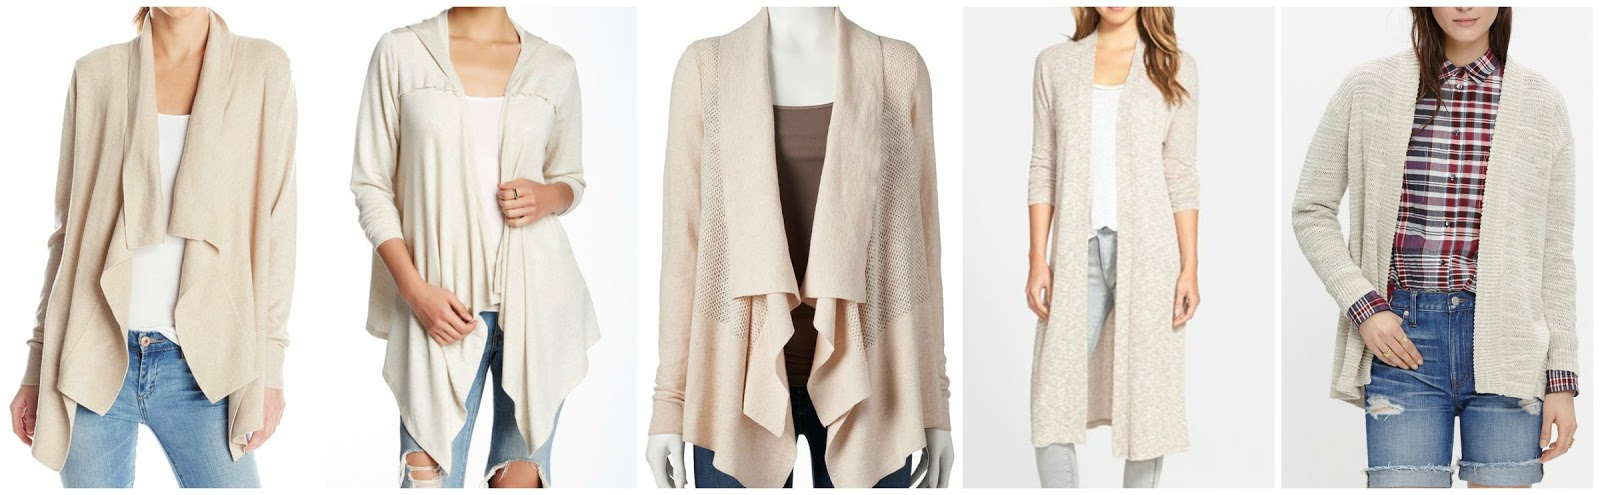 draped collectivefab and front boutique cardigan snails products snips sleeves drapes open ruffle